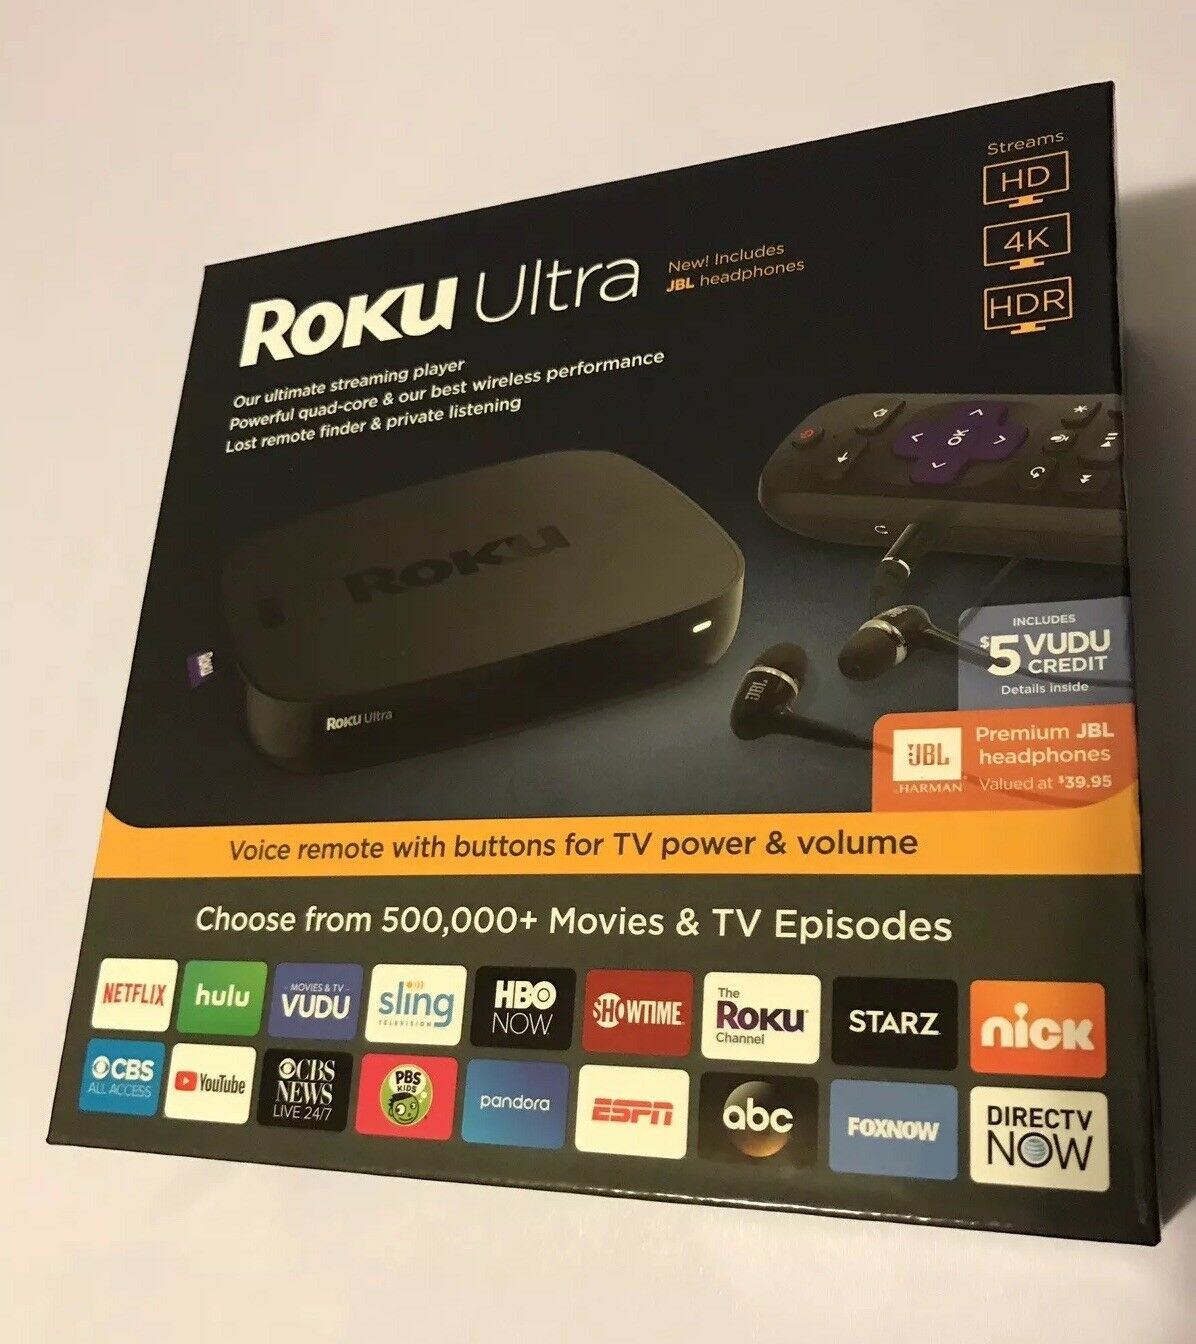 s-l1600 Roku Ultra 4K HD HDR Streaming Player with Premium JBL Headphones